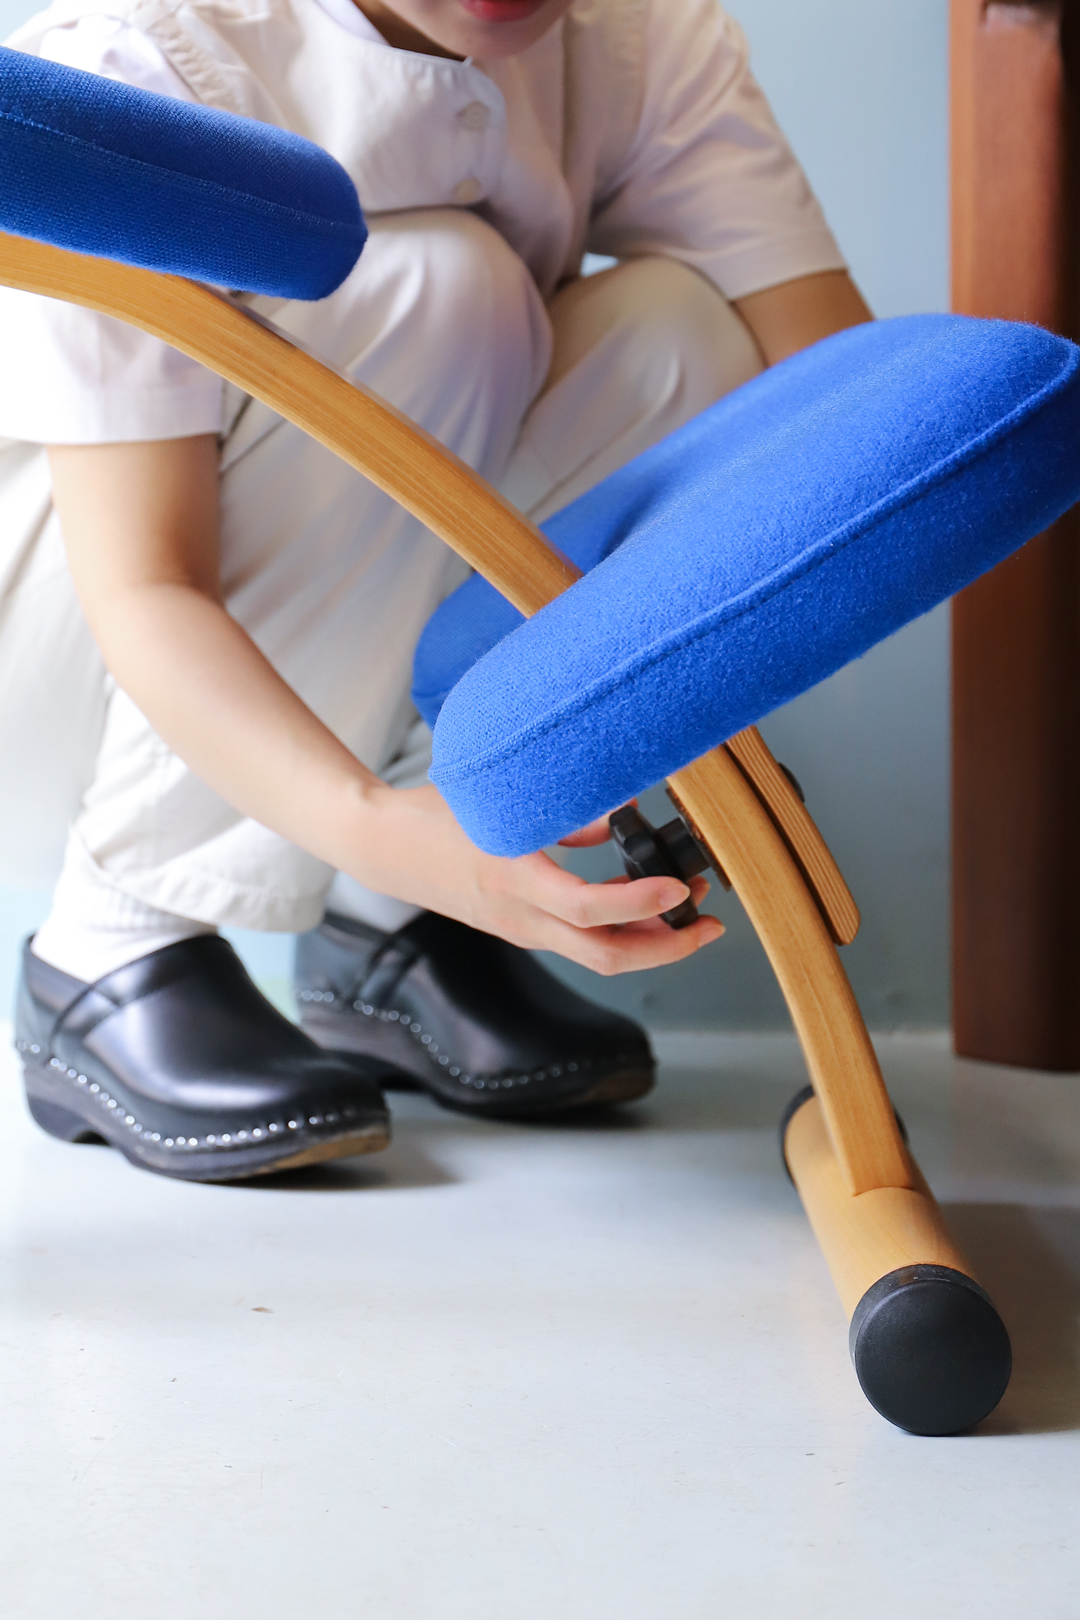 Rybo Balance Easy Chair Norway/リボ バランスチェア イージー ブルー ノルウェー デザイン 椅子 北欧家具